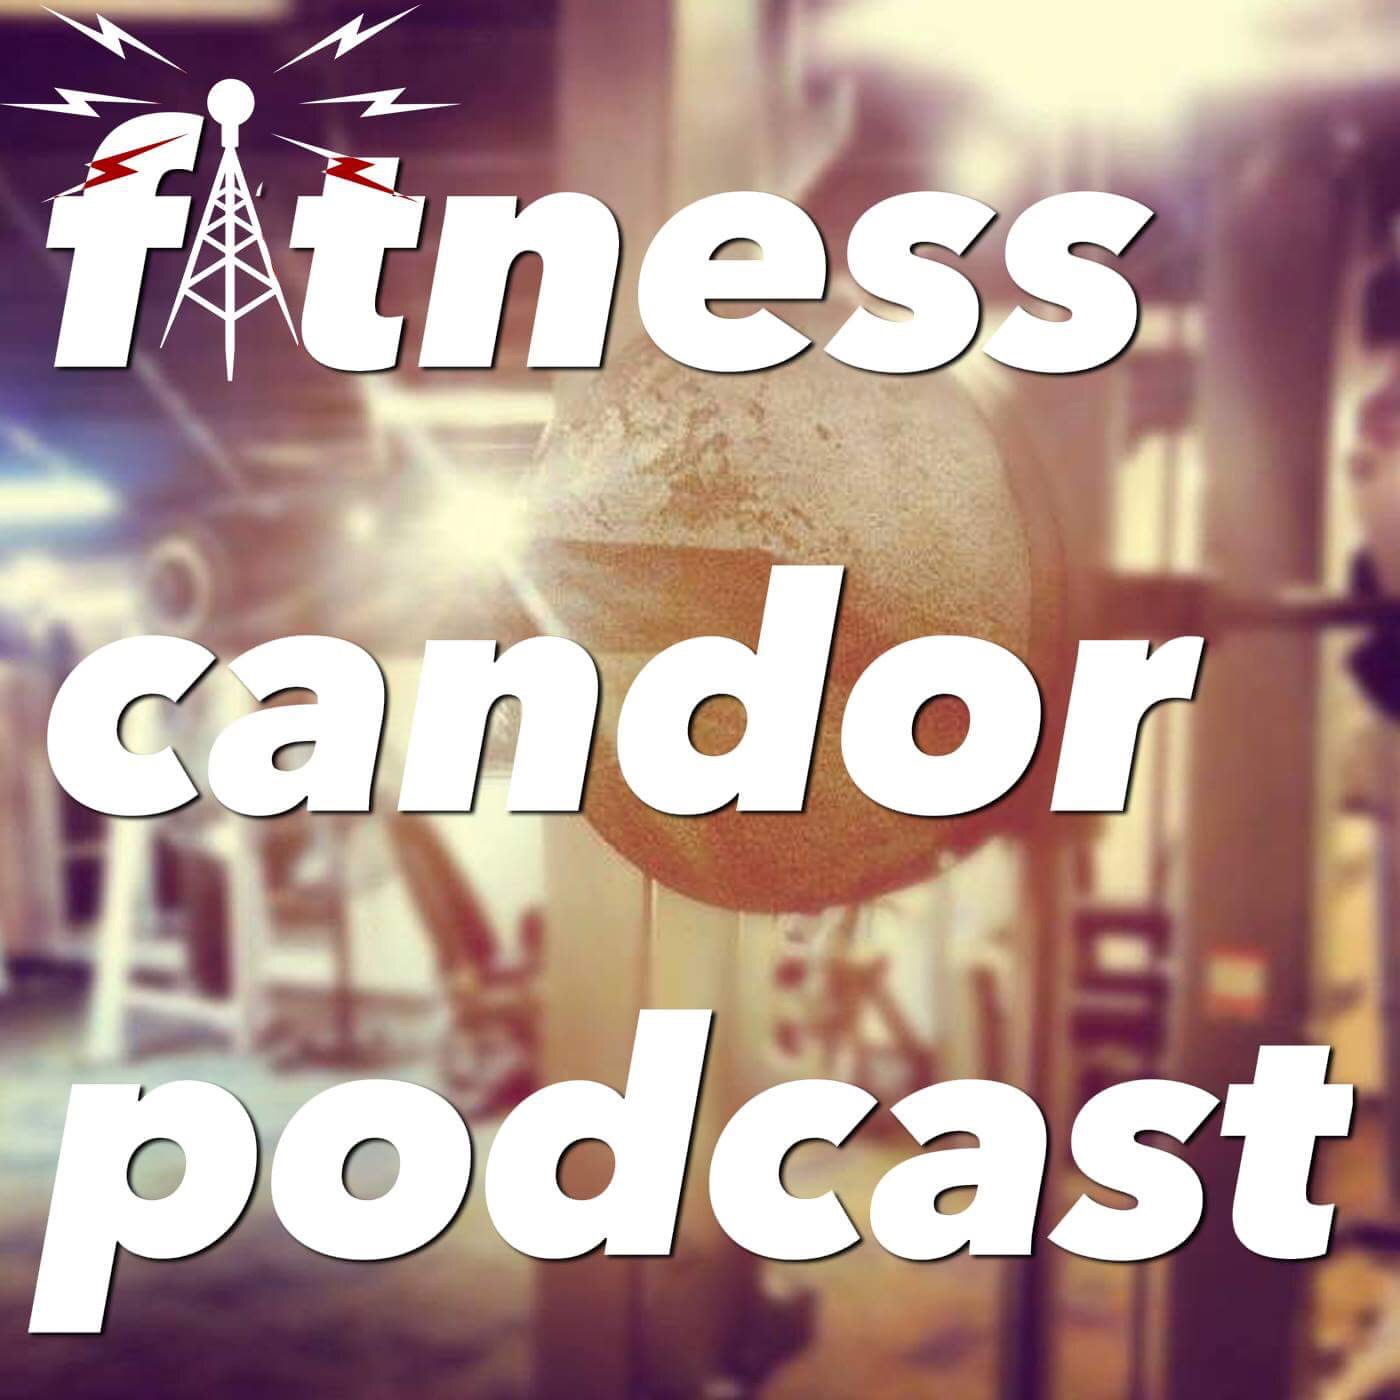 Throwback Thursday episode 047 Tony Gentilcore - Simple vs. novelty training, being weak is dangerous and Santa isn't real